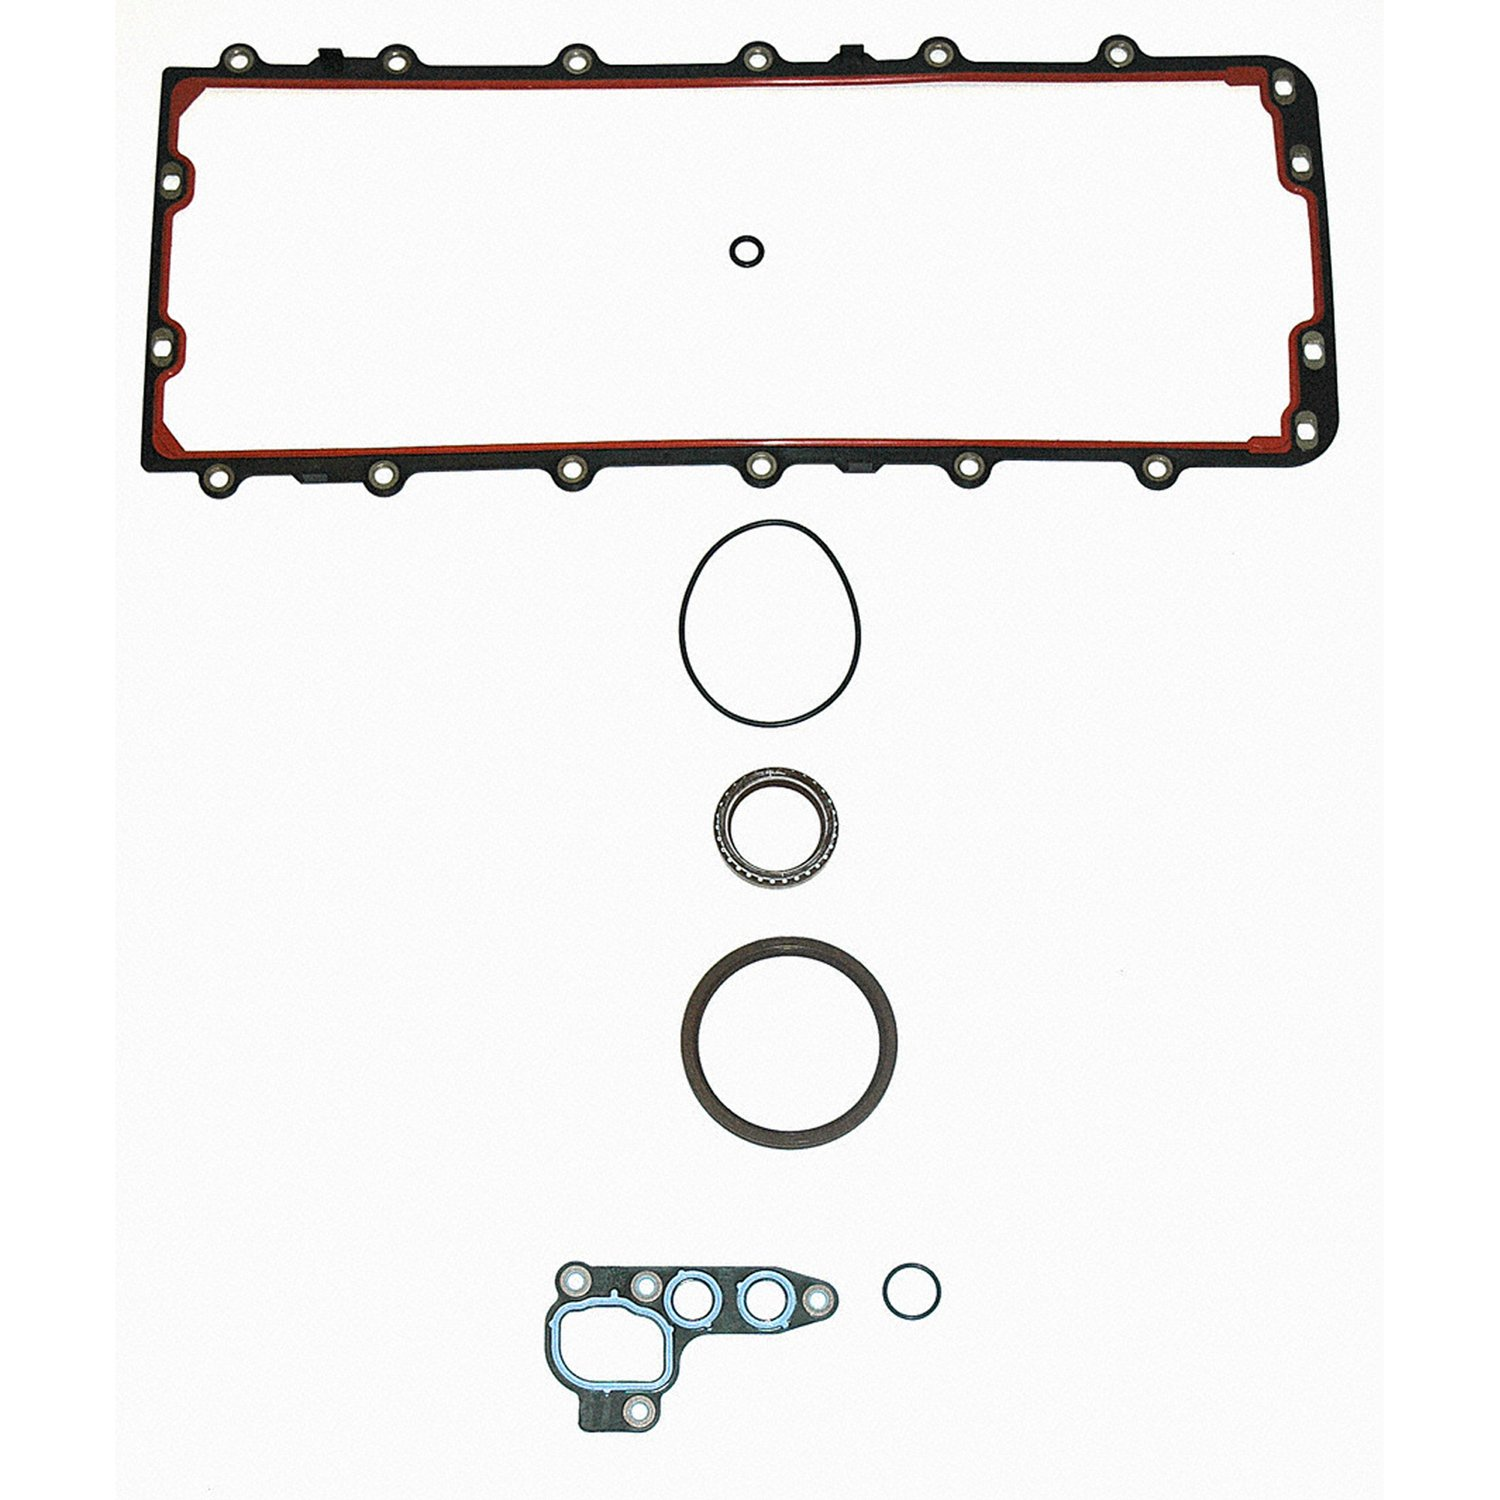 Killer Filter Replacement for MAIN FILTER MF0064592